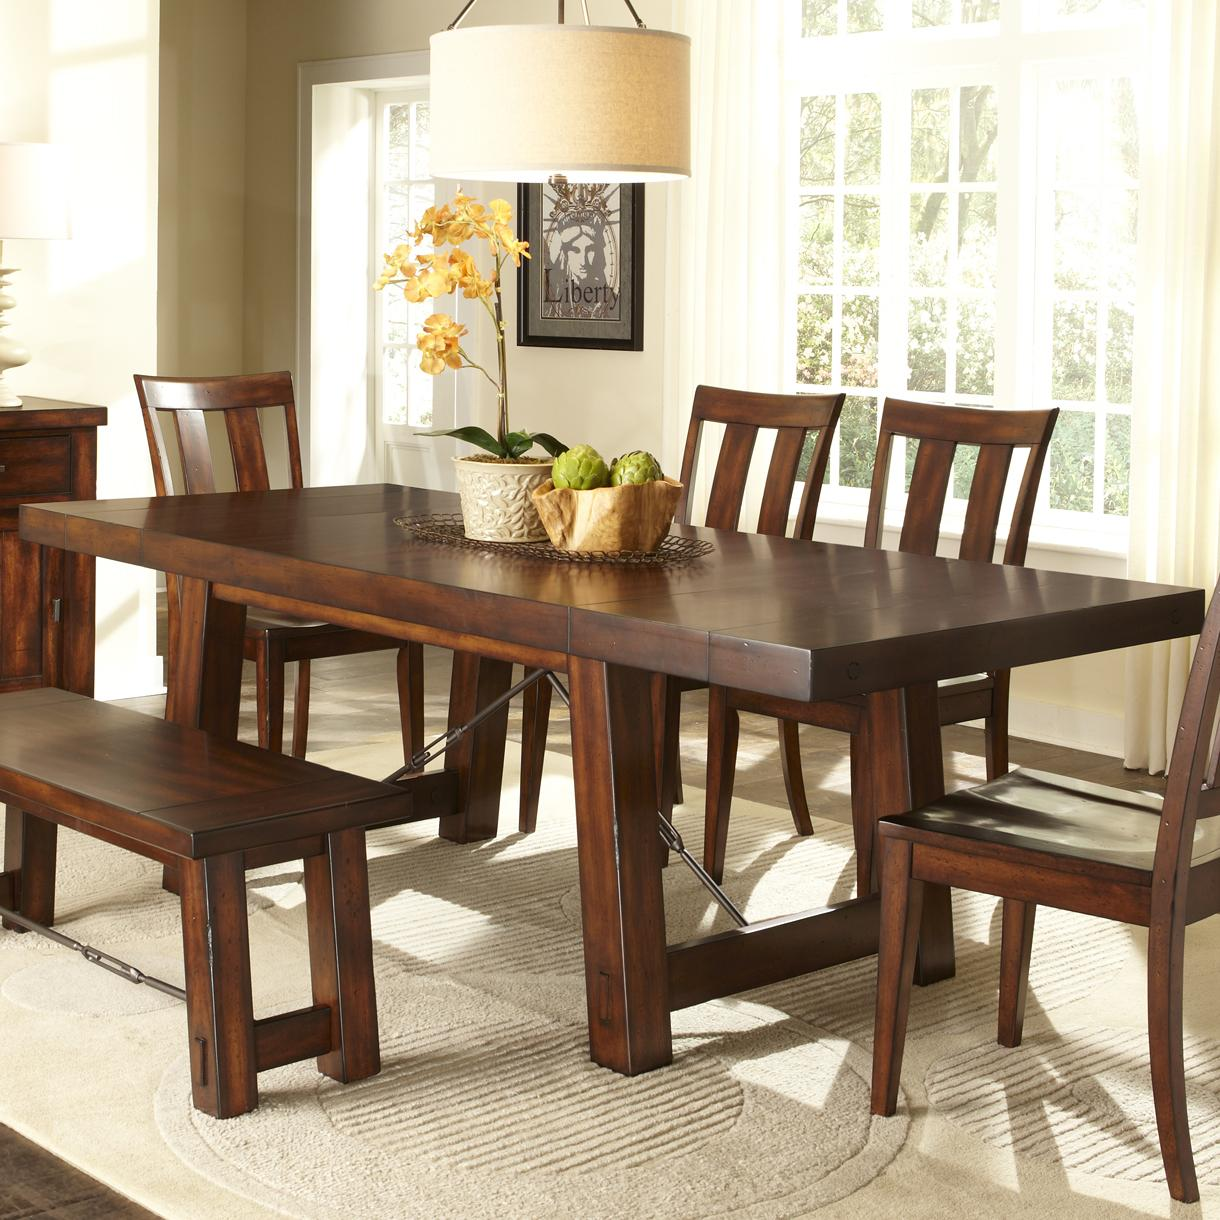 Liberty Furniture Tahoe Trestle Table   Item Number: 555 T4090